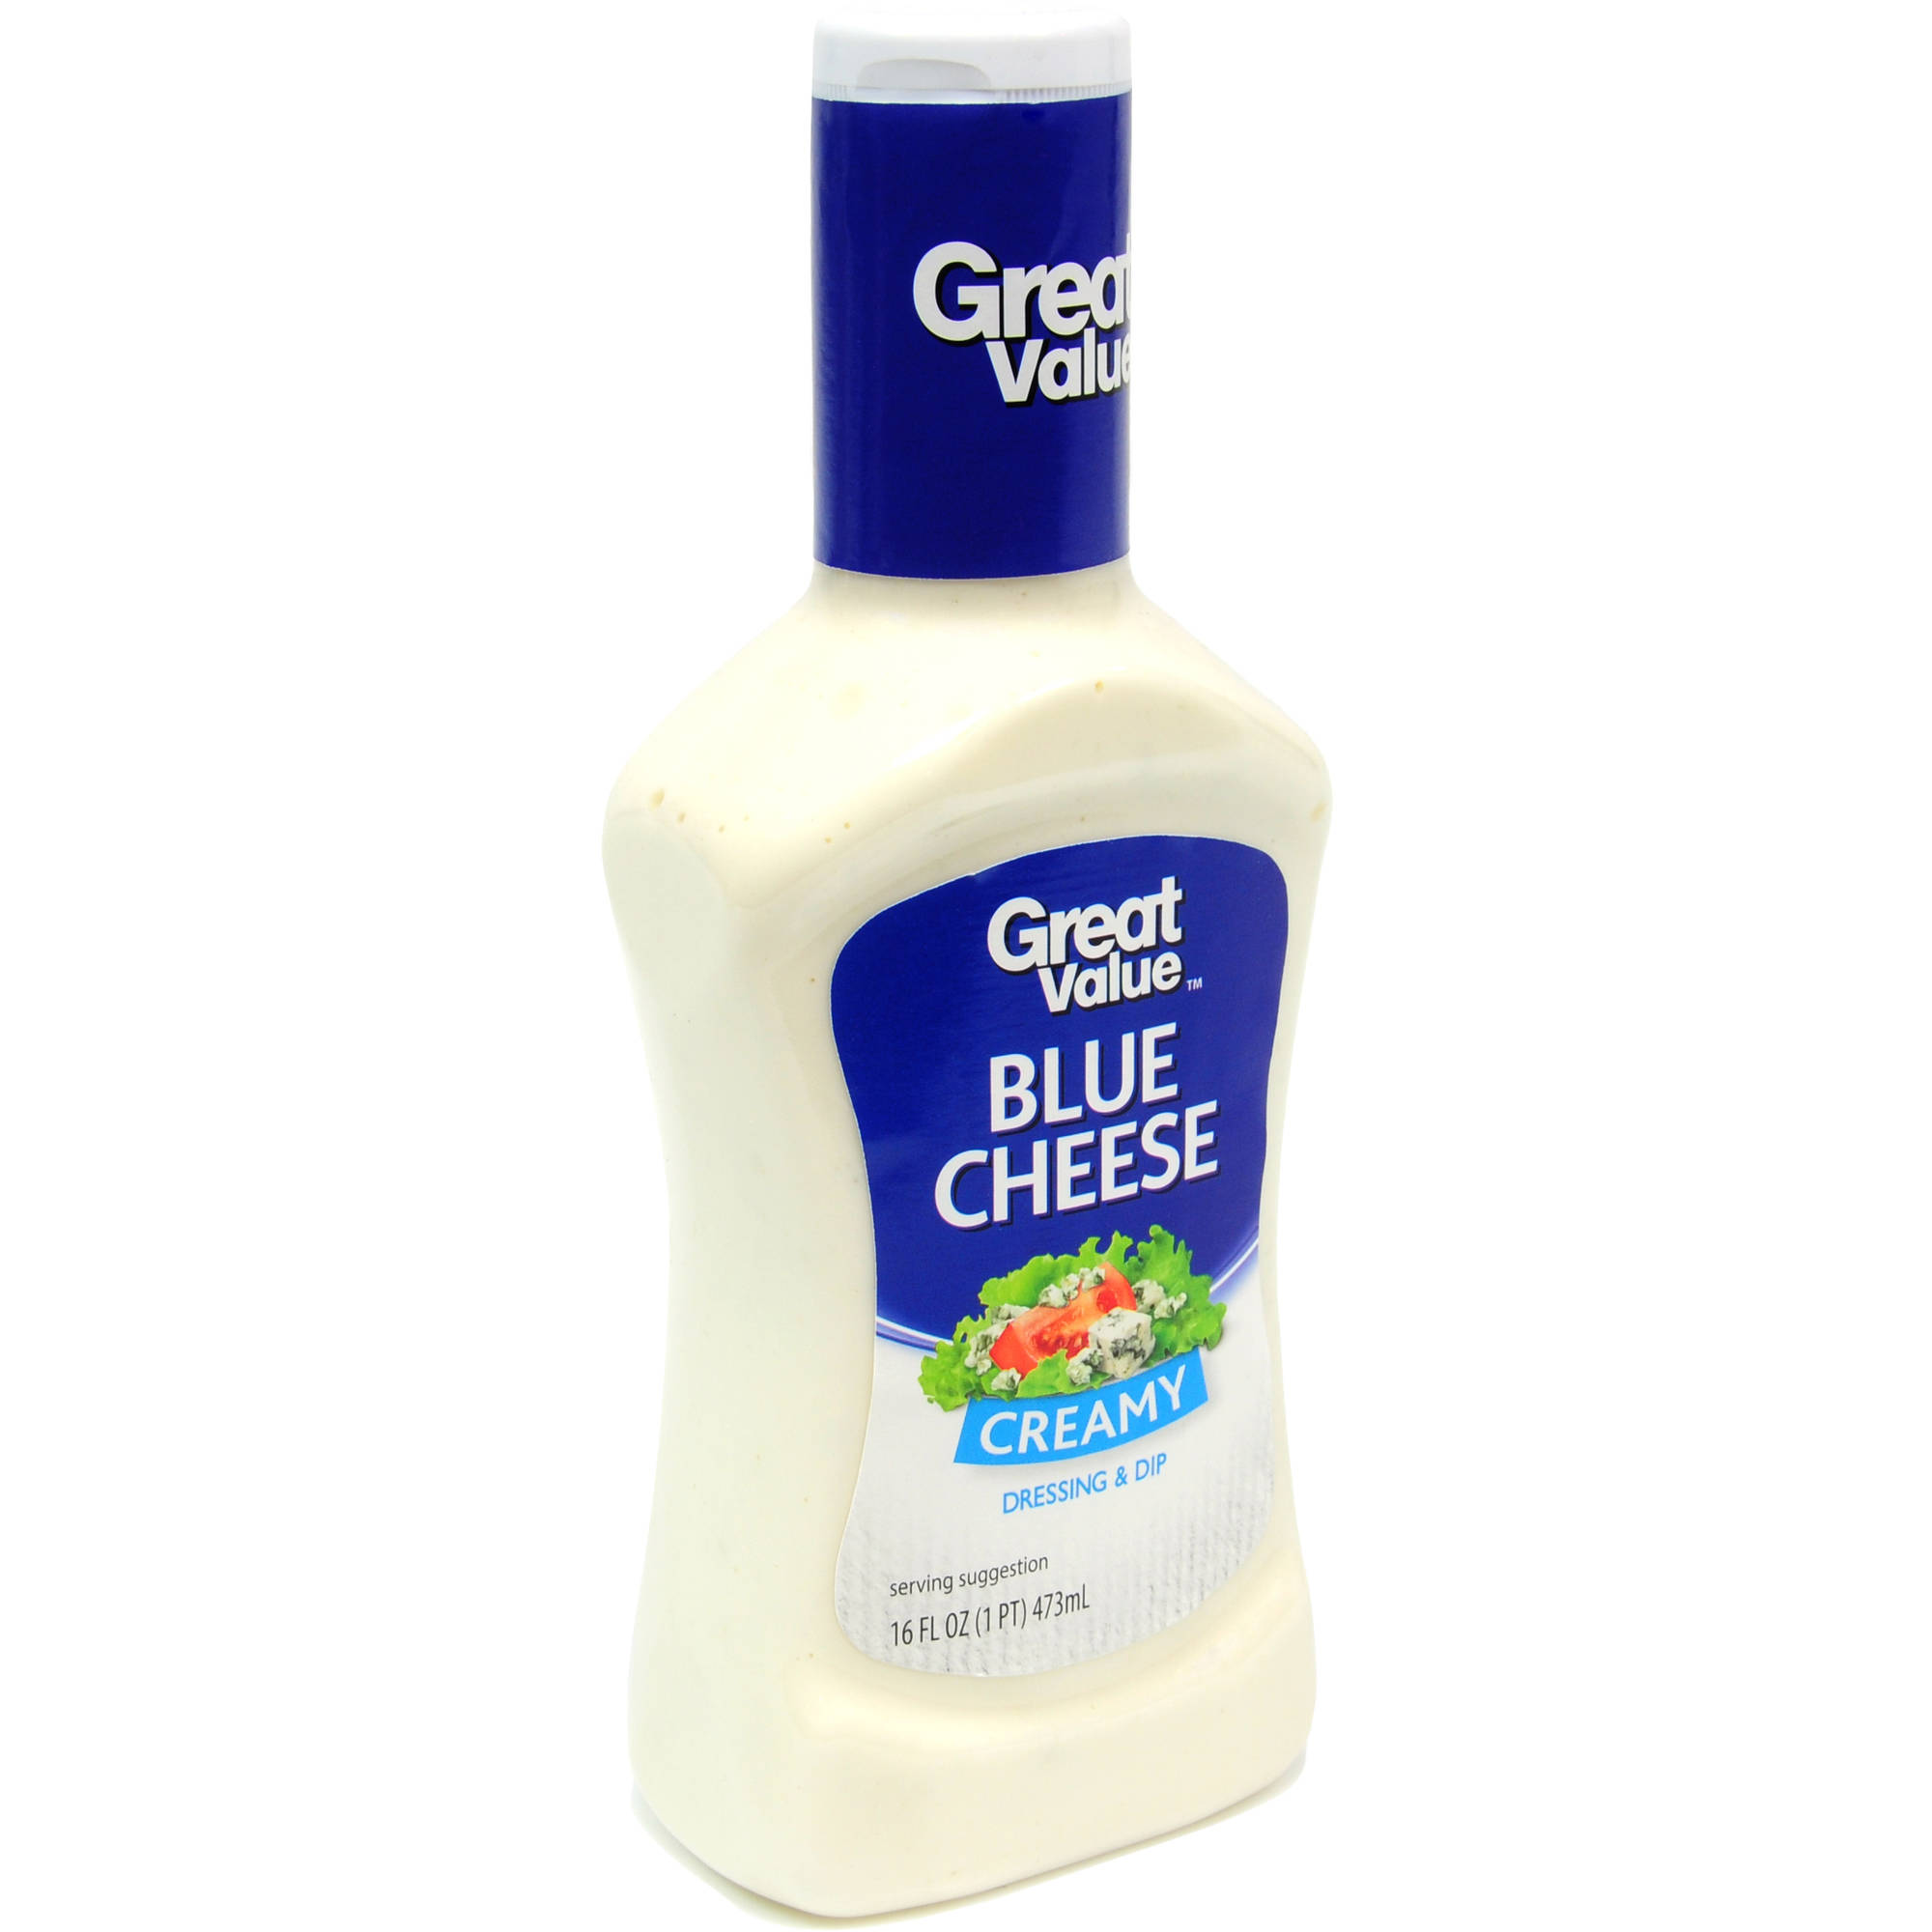 Great Value Blue Cheese Dressing & Dip, 16 oz by Bay Valley Foods